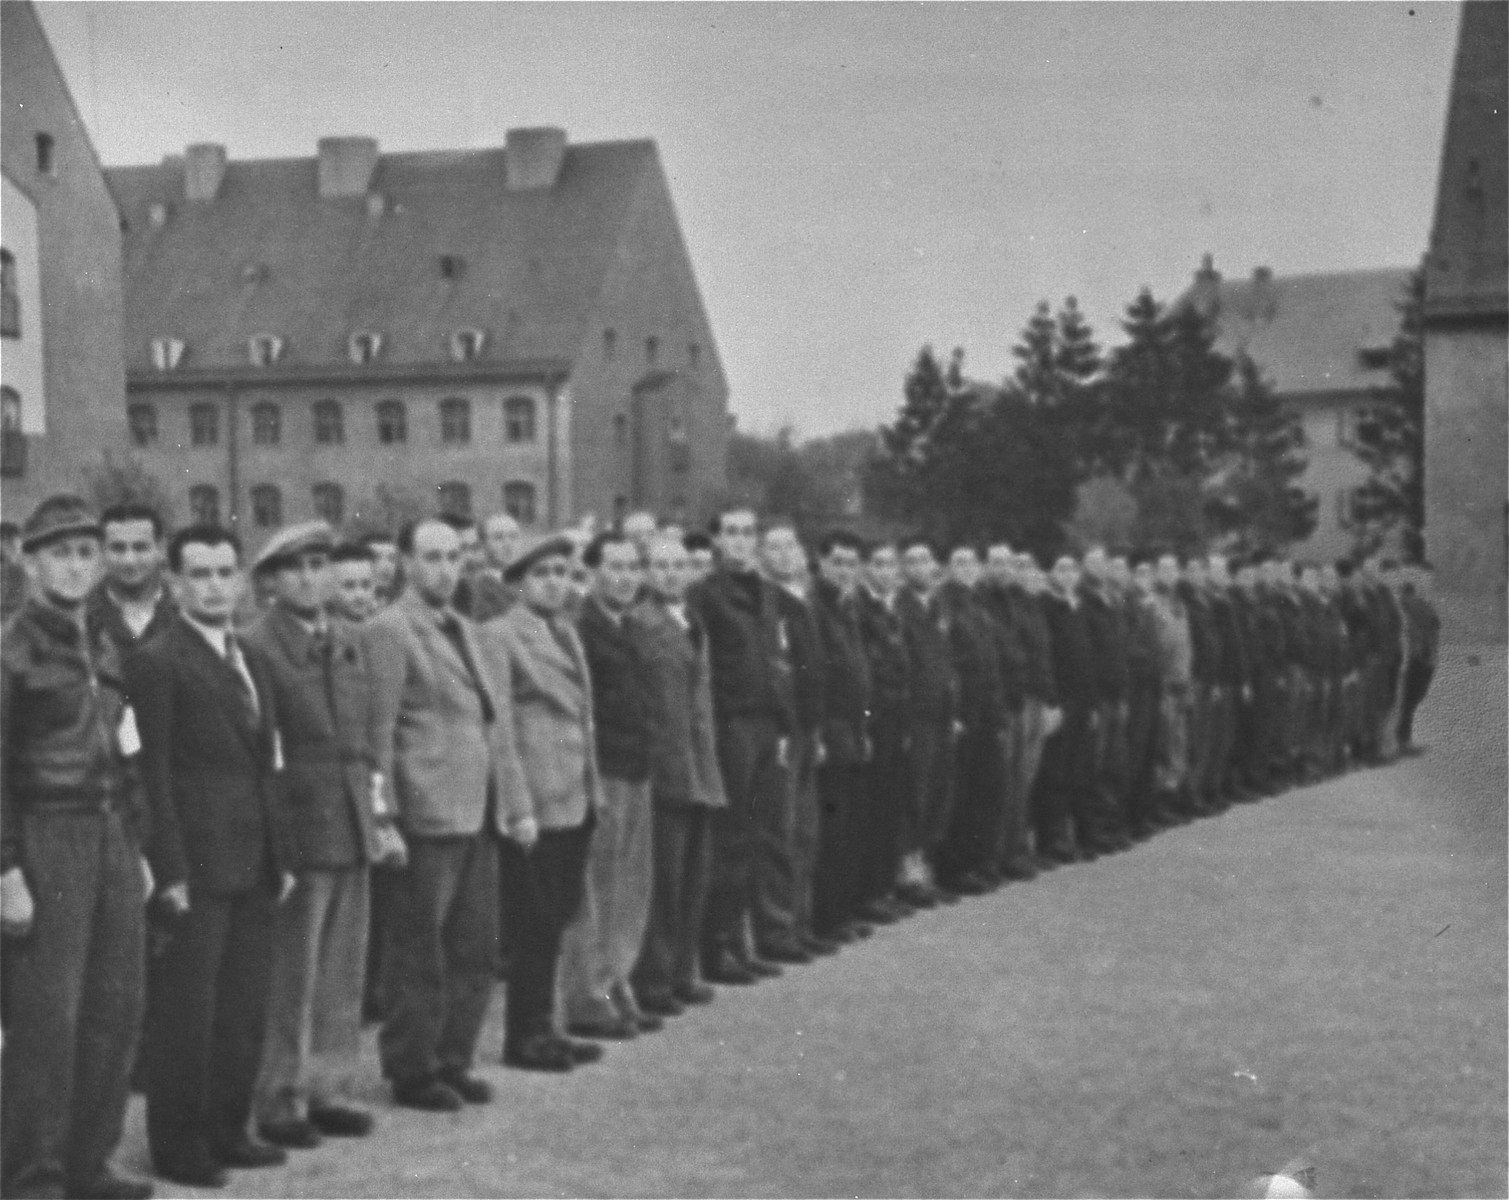 Members of the Jewish police force at the Landsberg displaced persons' camp line up in the main square of the camp. [Oversized print]